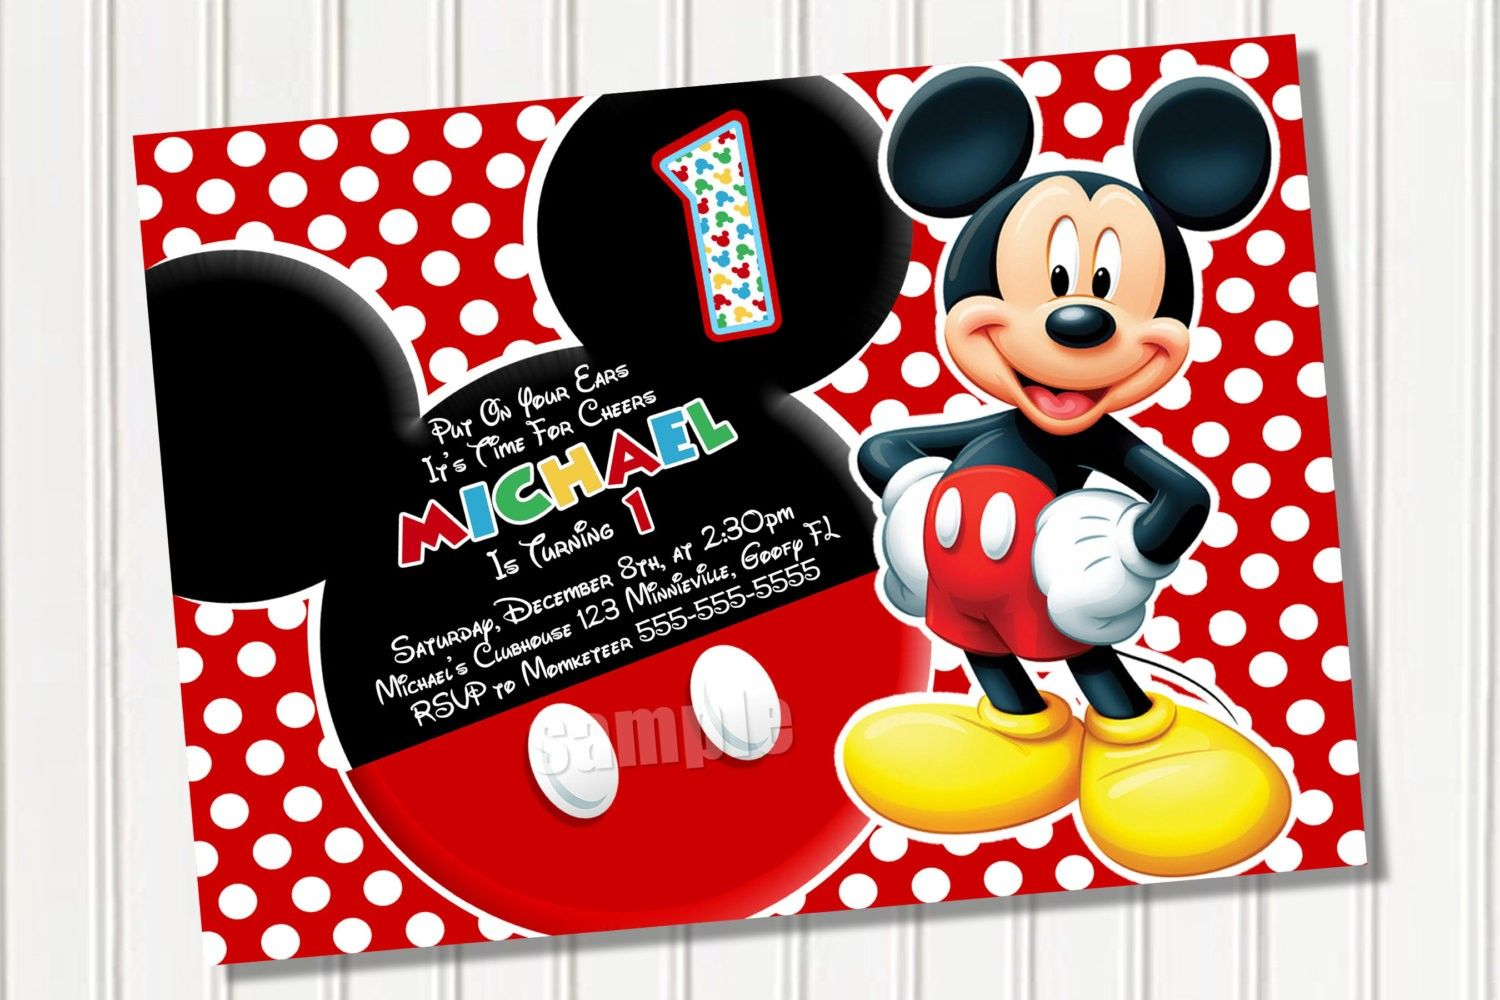 Free Printable Mickey Mouse St Birthday Party Invitations DIY - Mickey mouse 1st birthday invitations template